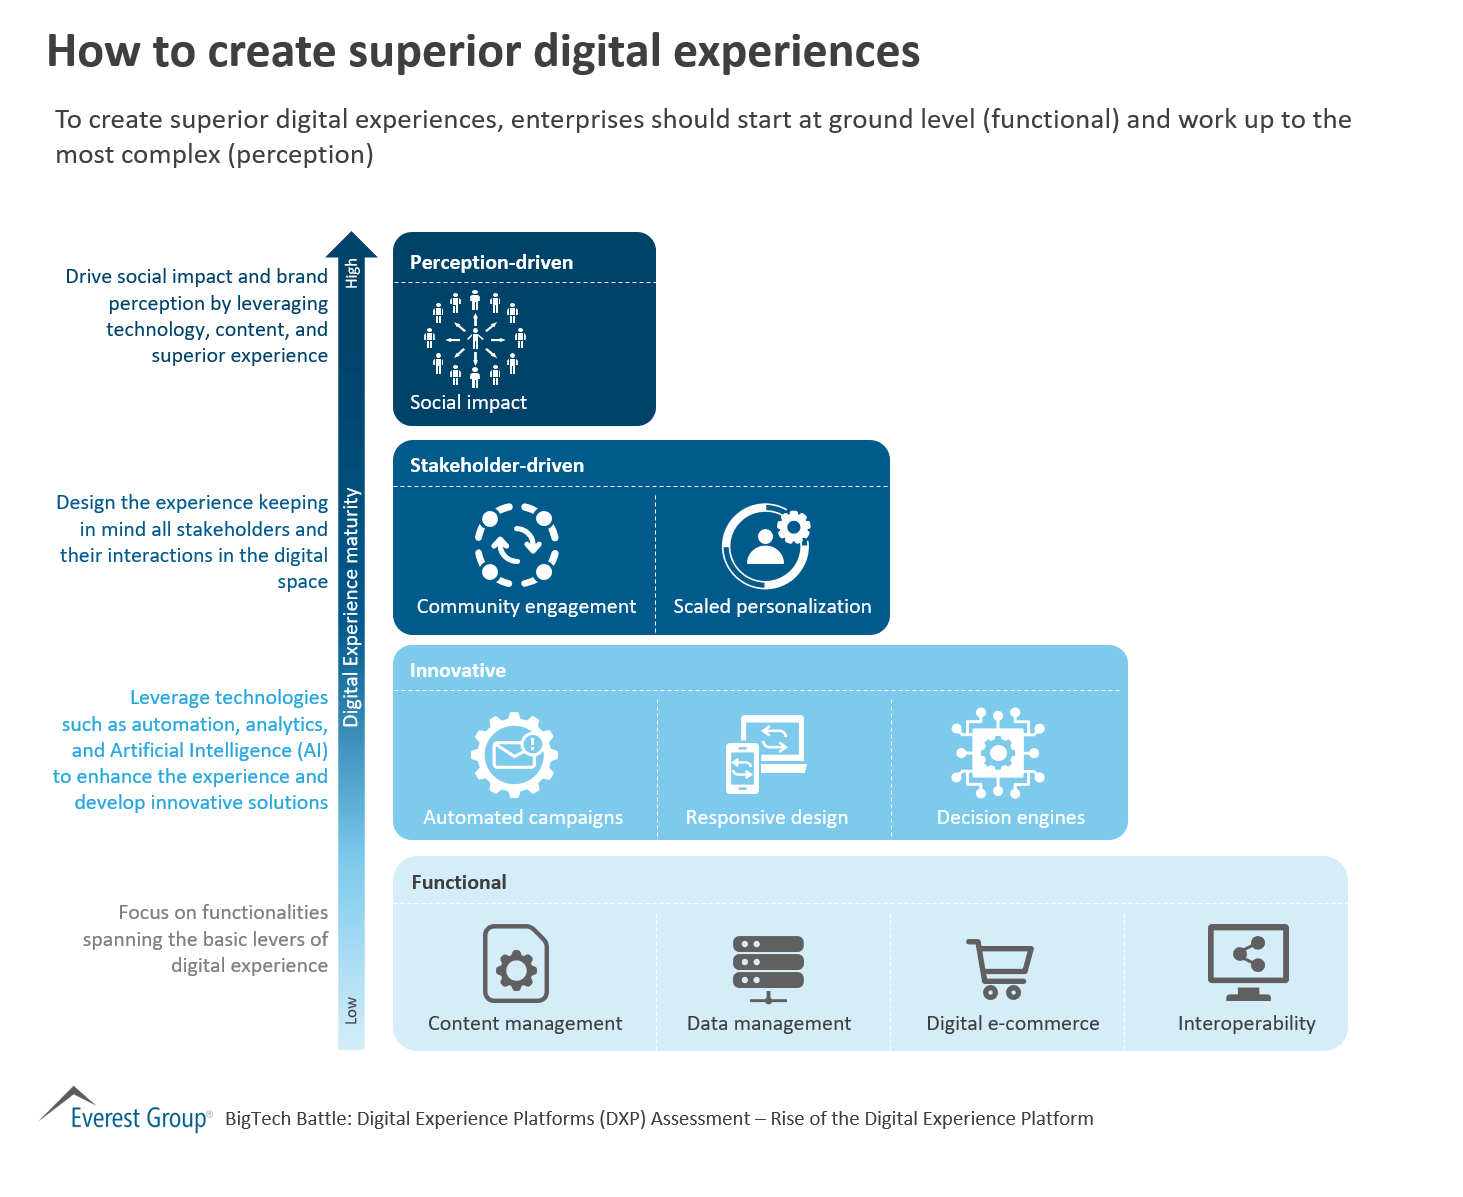 How to create superior digital experiences